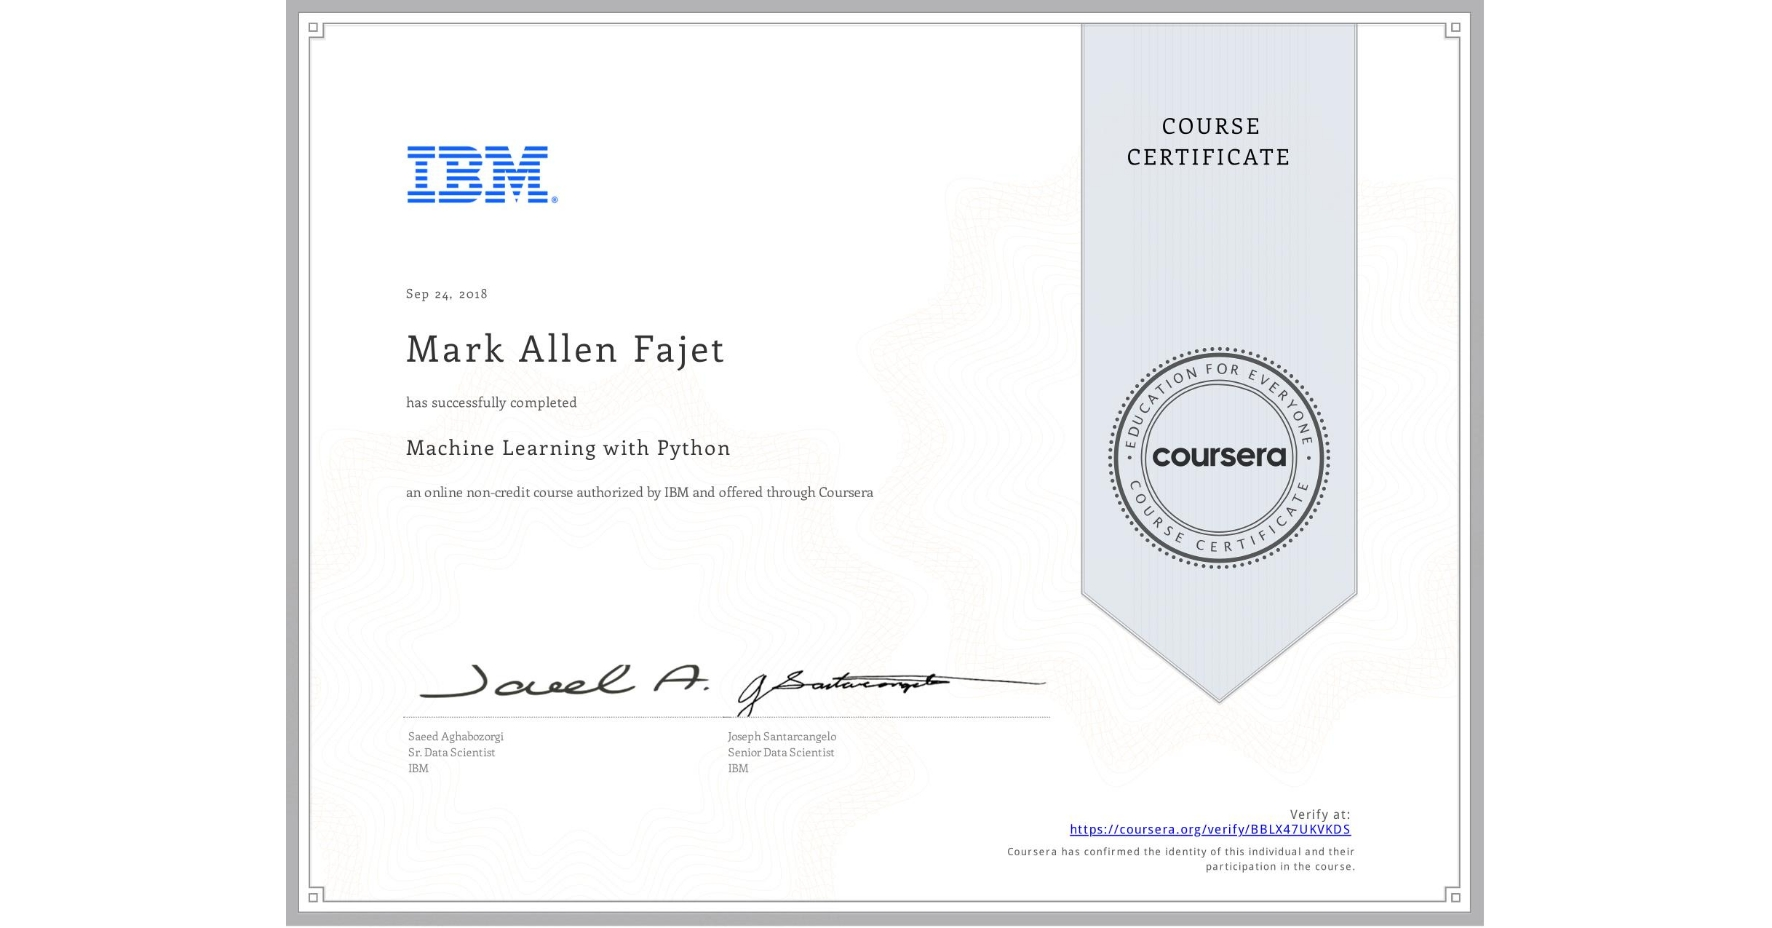 View certificate for Mark Allen Fajet, Machine Learning with Python, an online non-credit course authorized by IBM and offered through Coursera